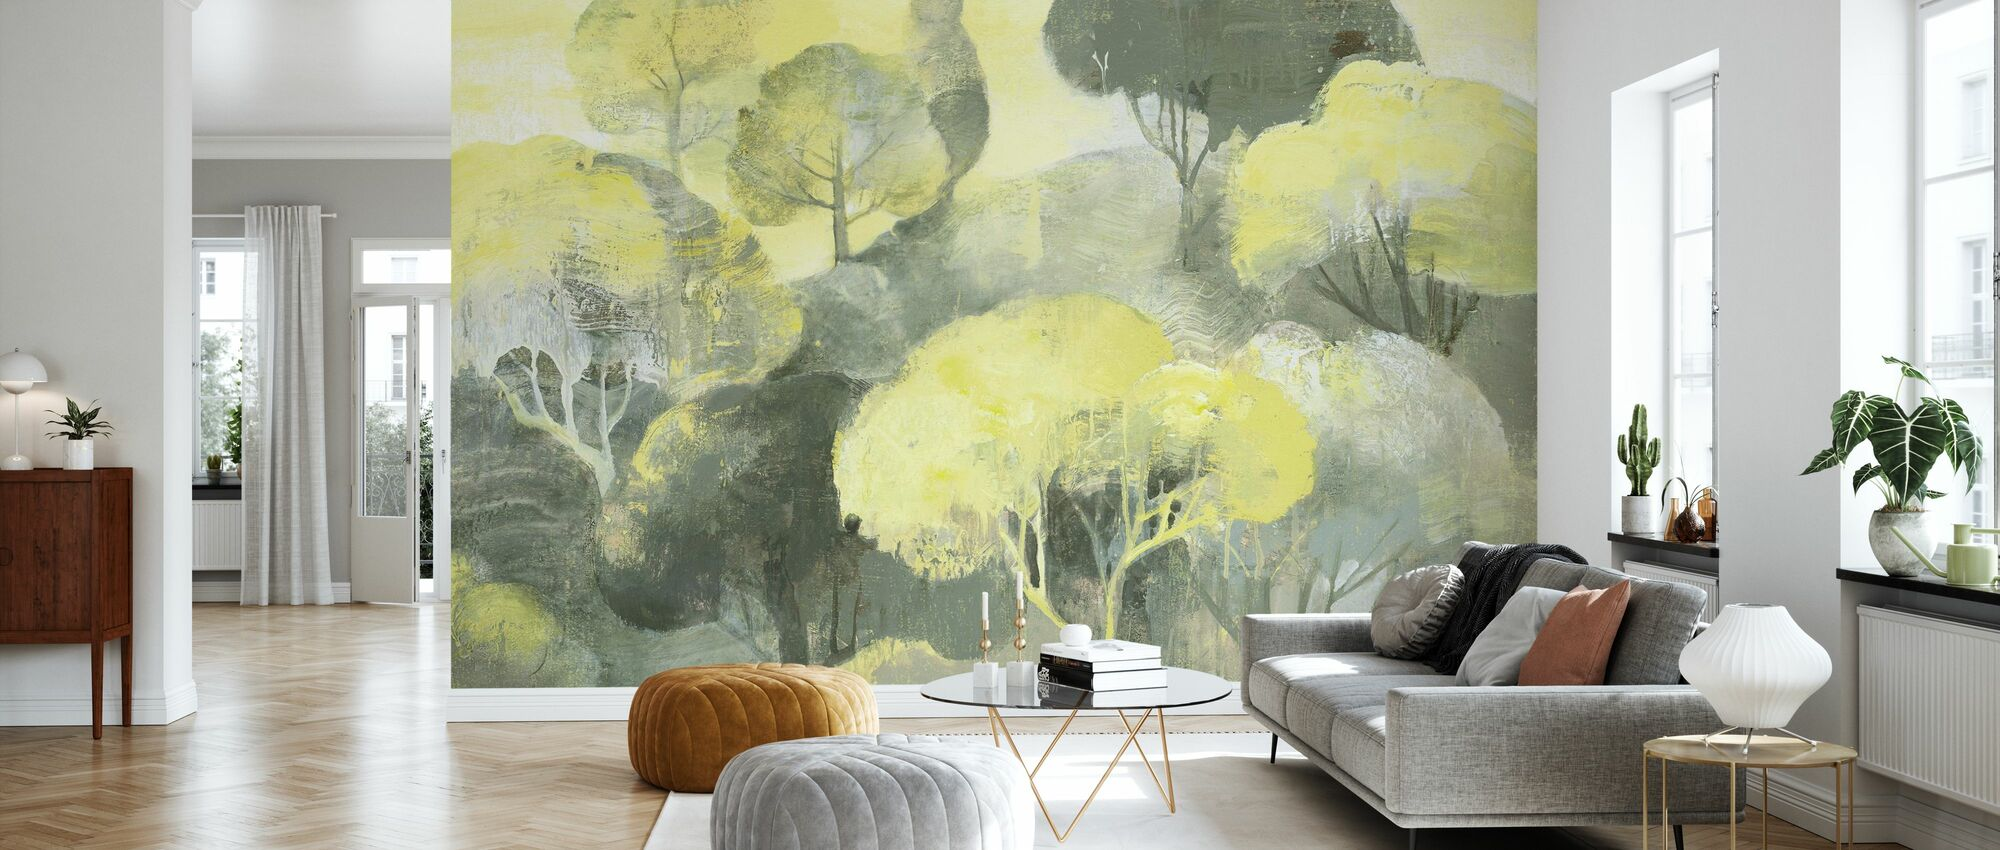 Looking Out at the Trees - Wallpaper - Living Room